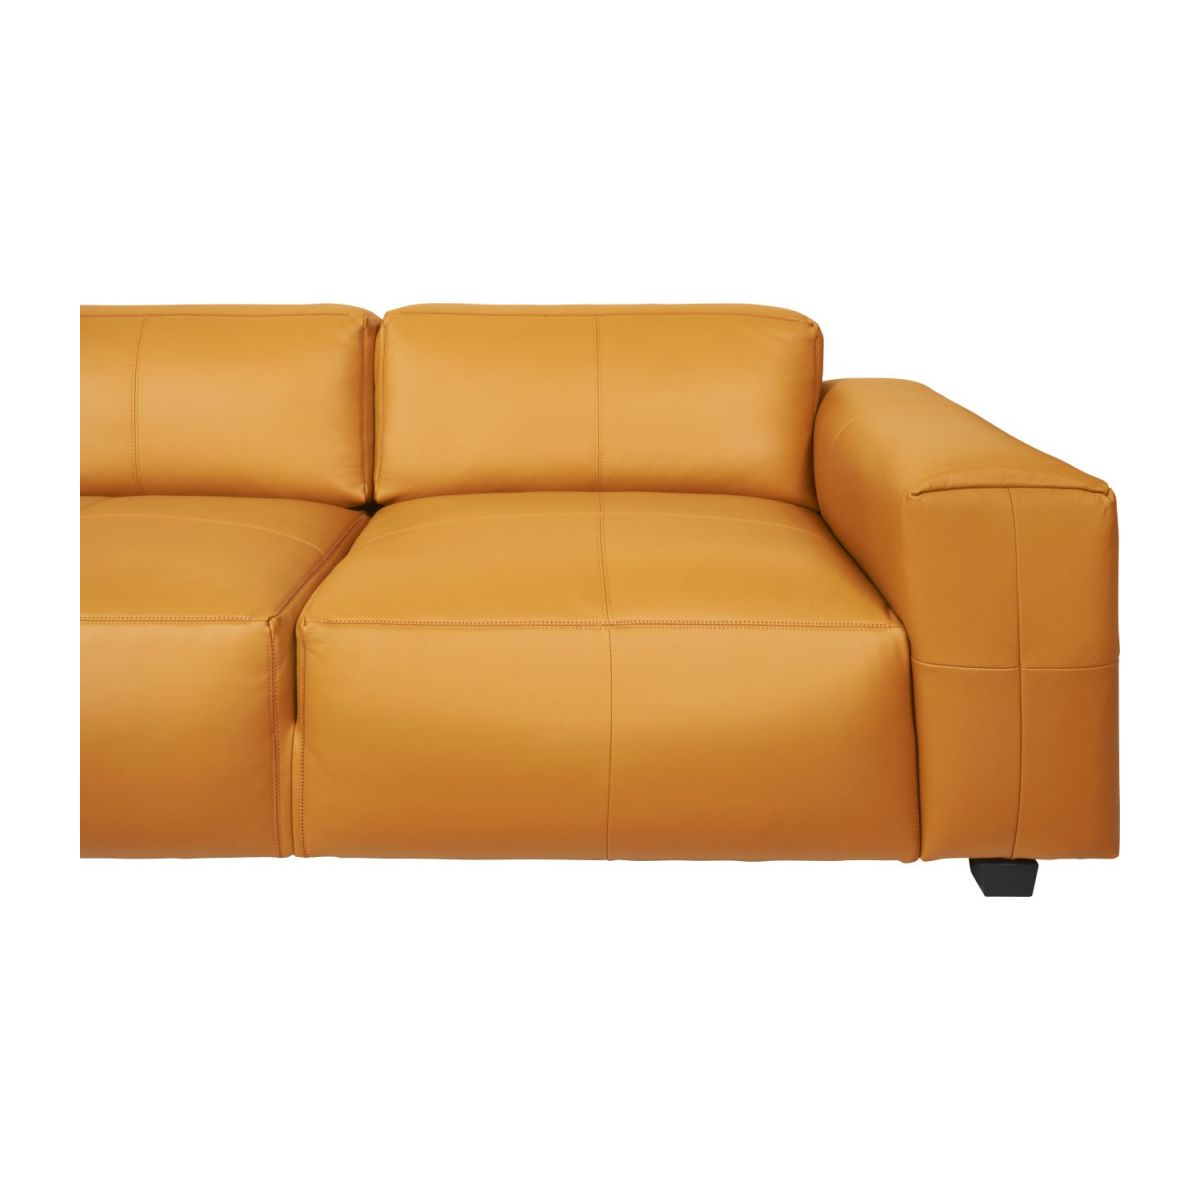 3 seater sofa in Savoy semi-aniline leather, cognac n°7